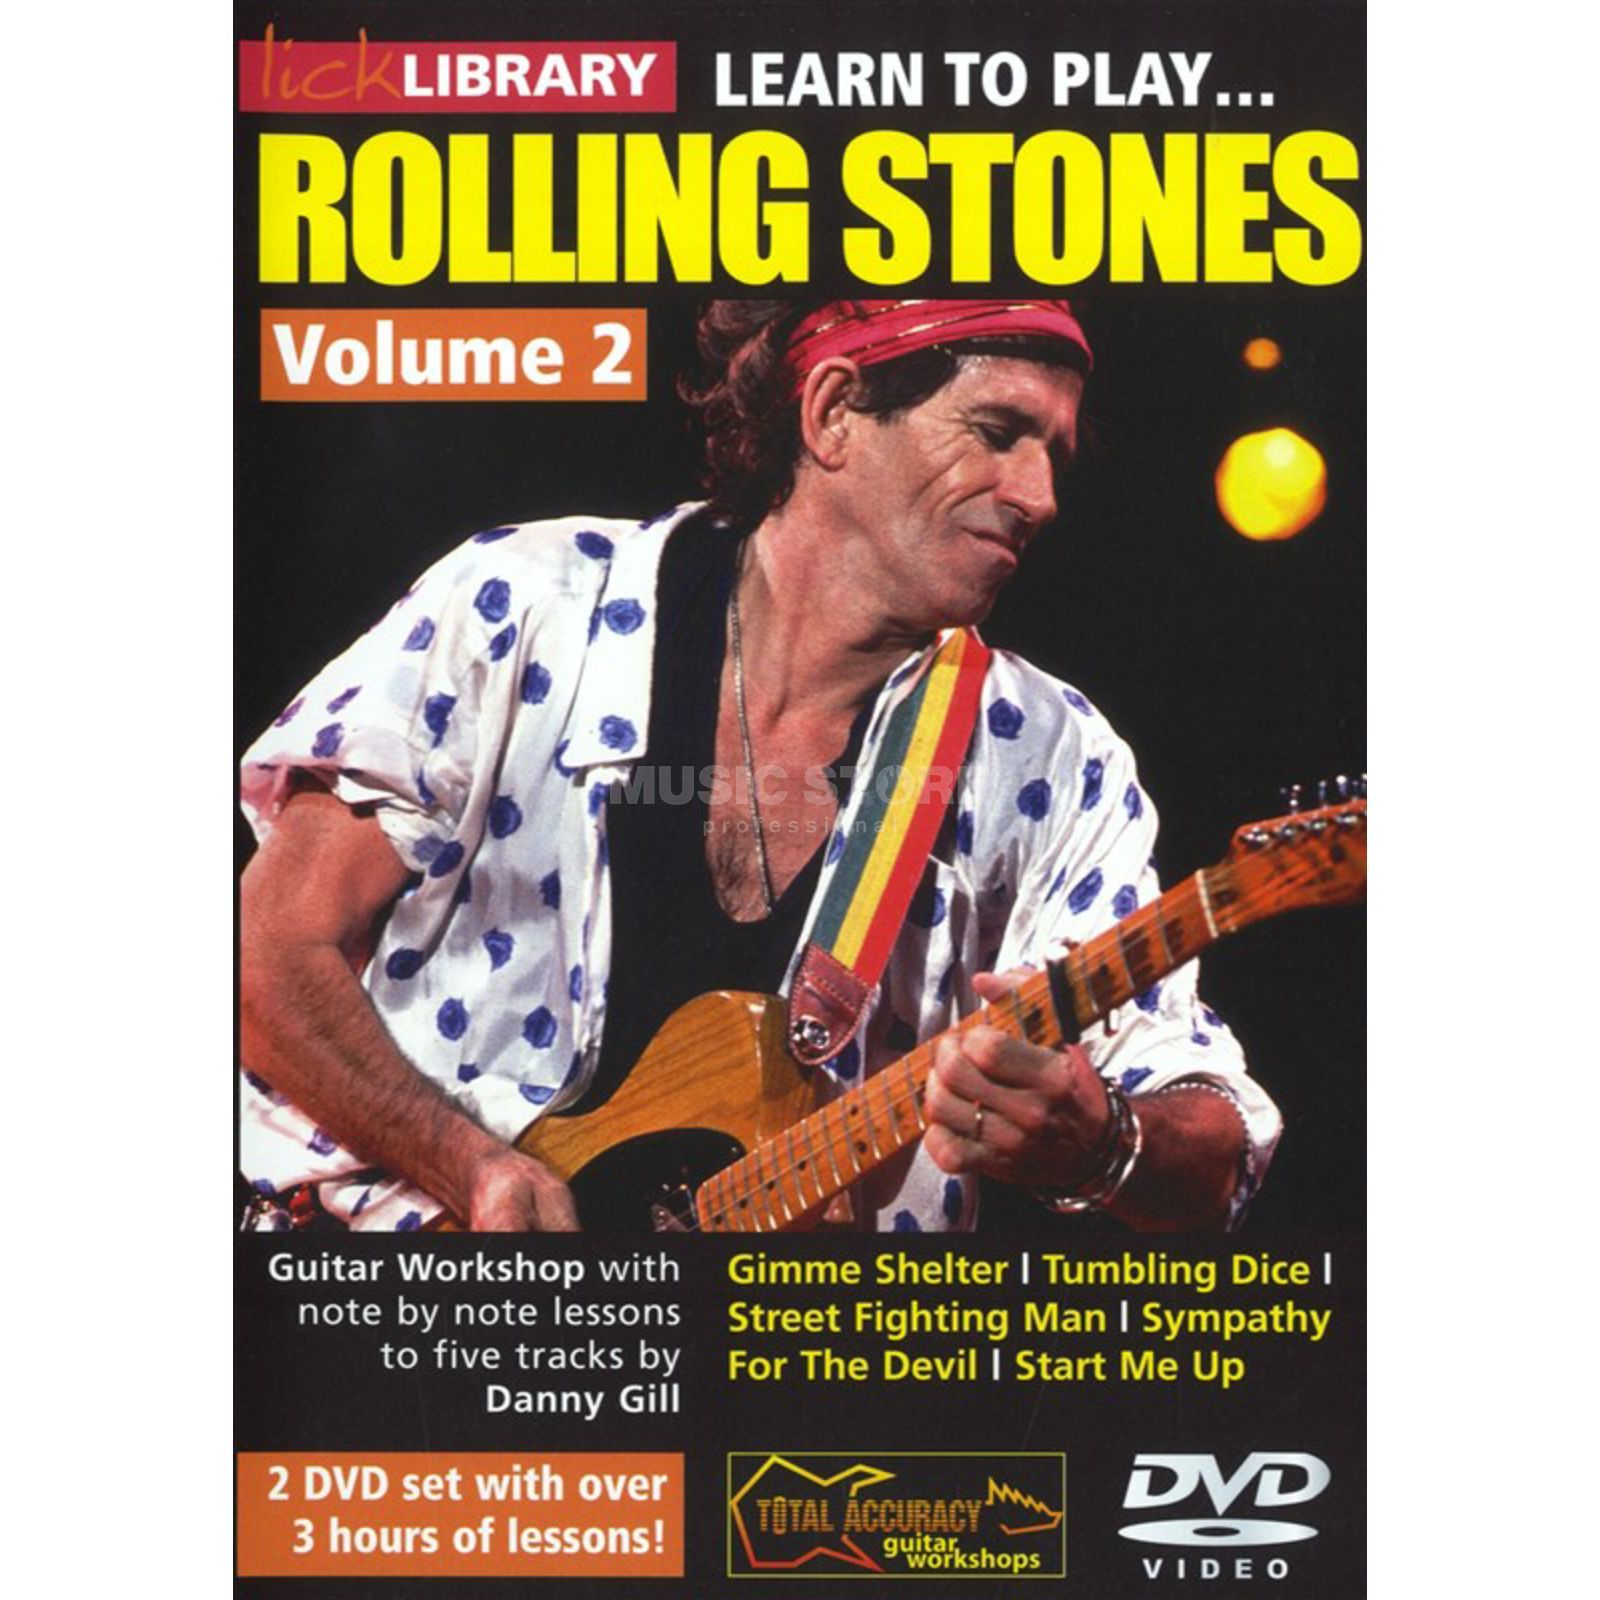 Roadrock International Lick Library: Learn To Play Rolling Stones 2 DVD Produktbillede